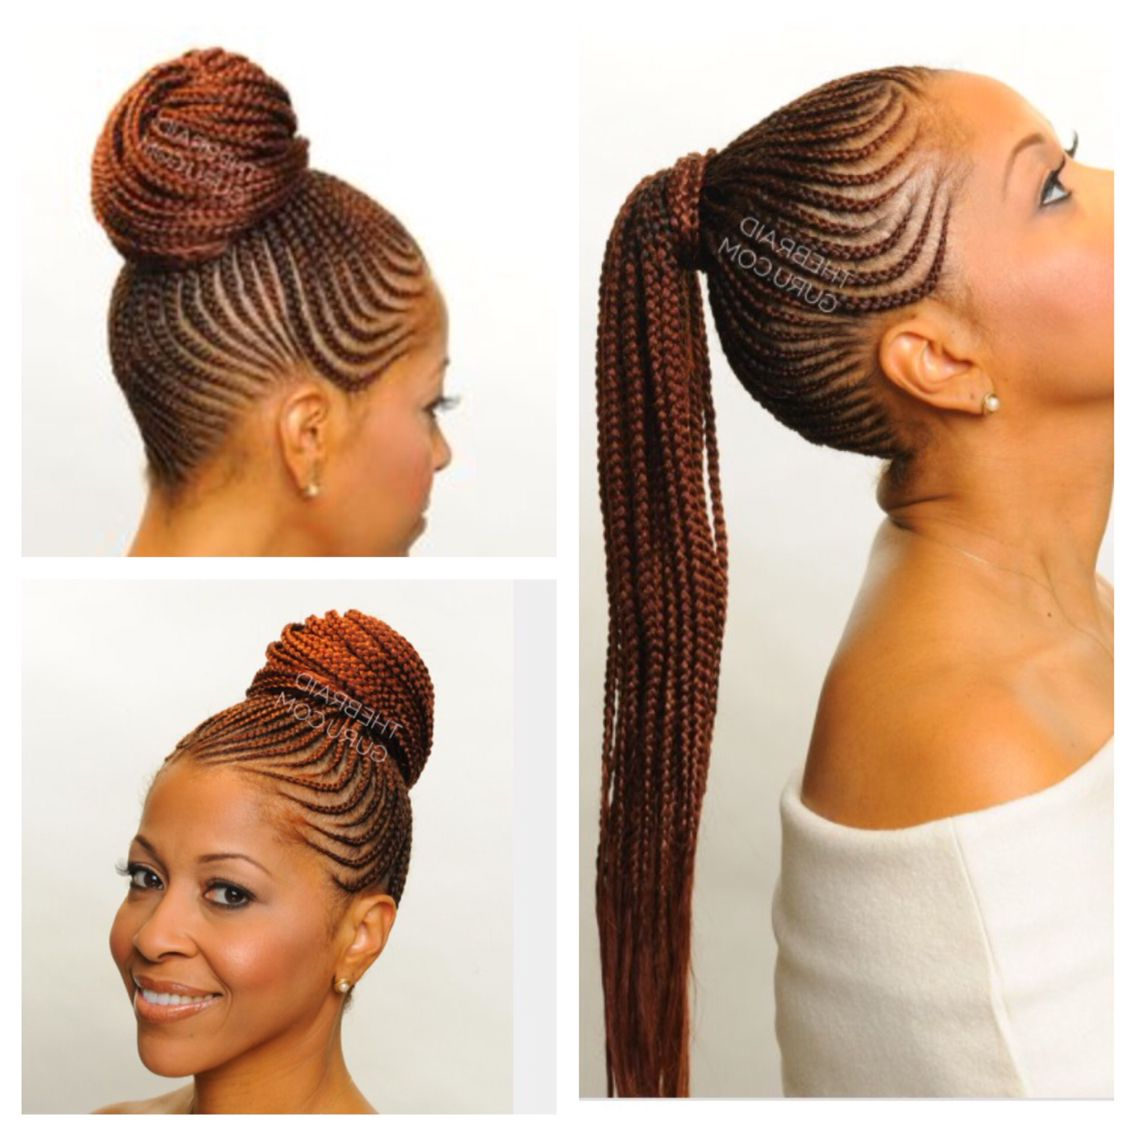 Braided Hairstyles Pertaining To Most Recent Cornrow Braided Bun Hairstyles (View 3 of 20)